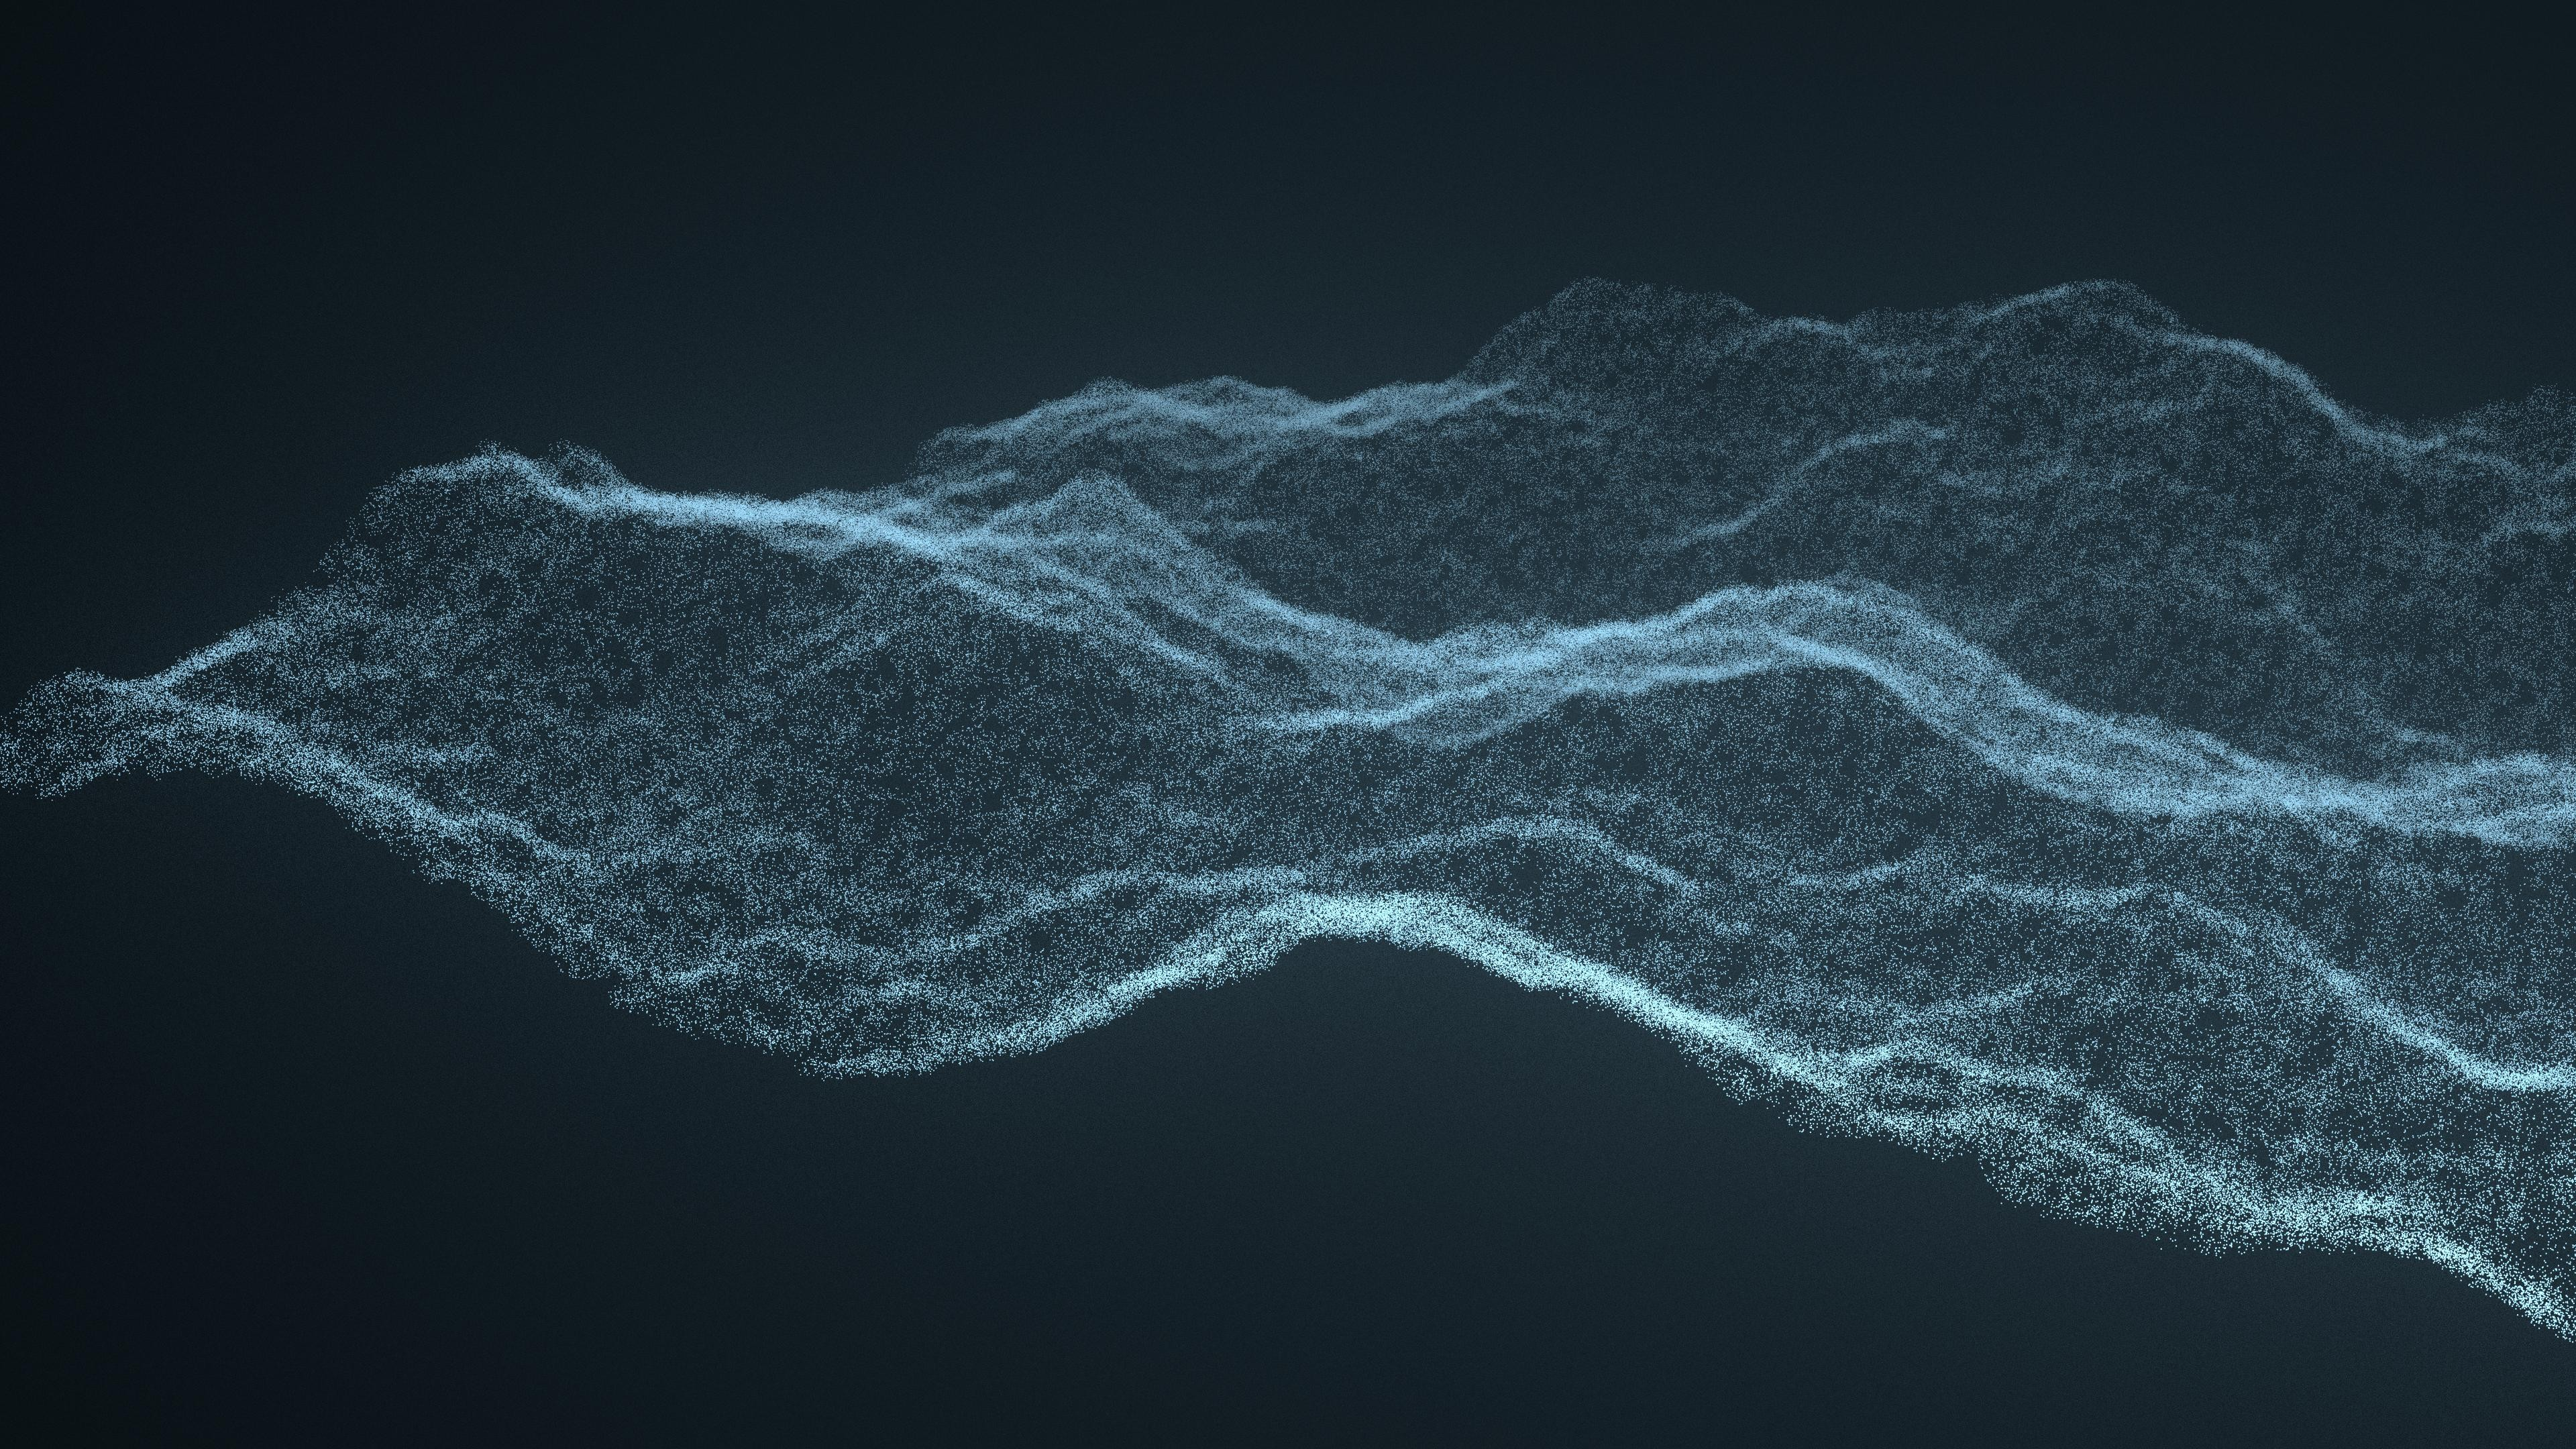 1920x1080 Abstract Dust Particles Laptop Full Hd 1080p Hd 4k